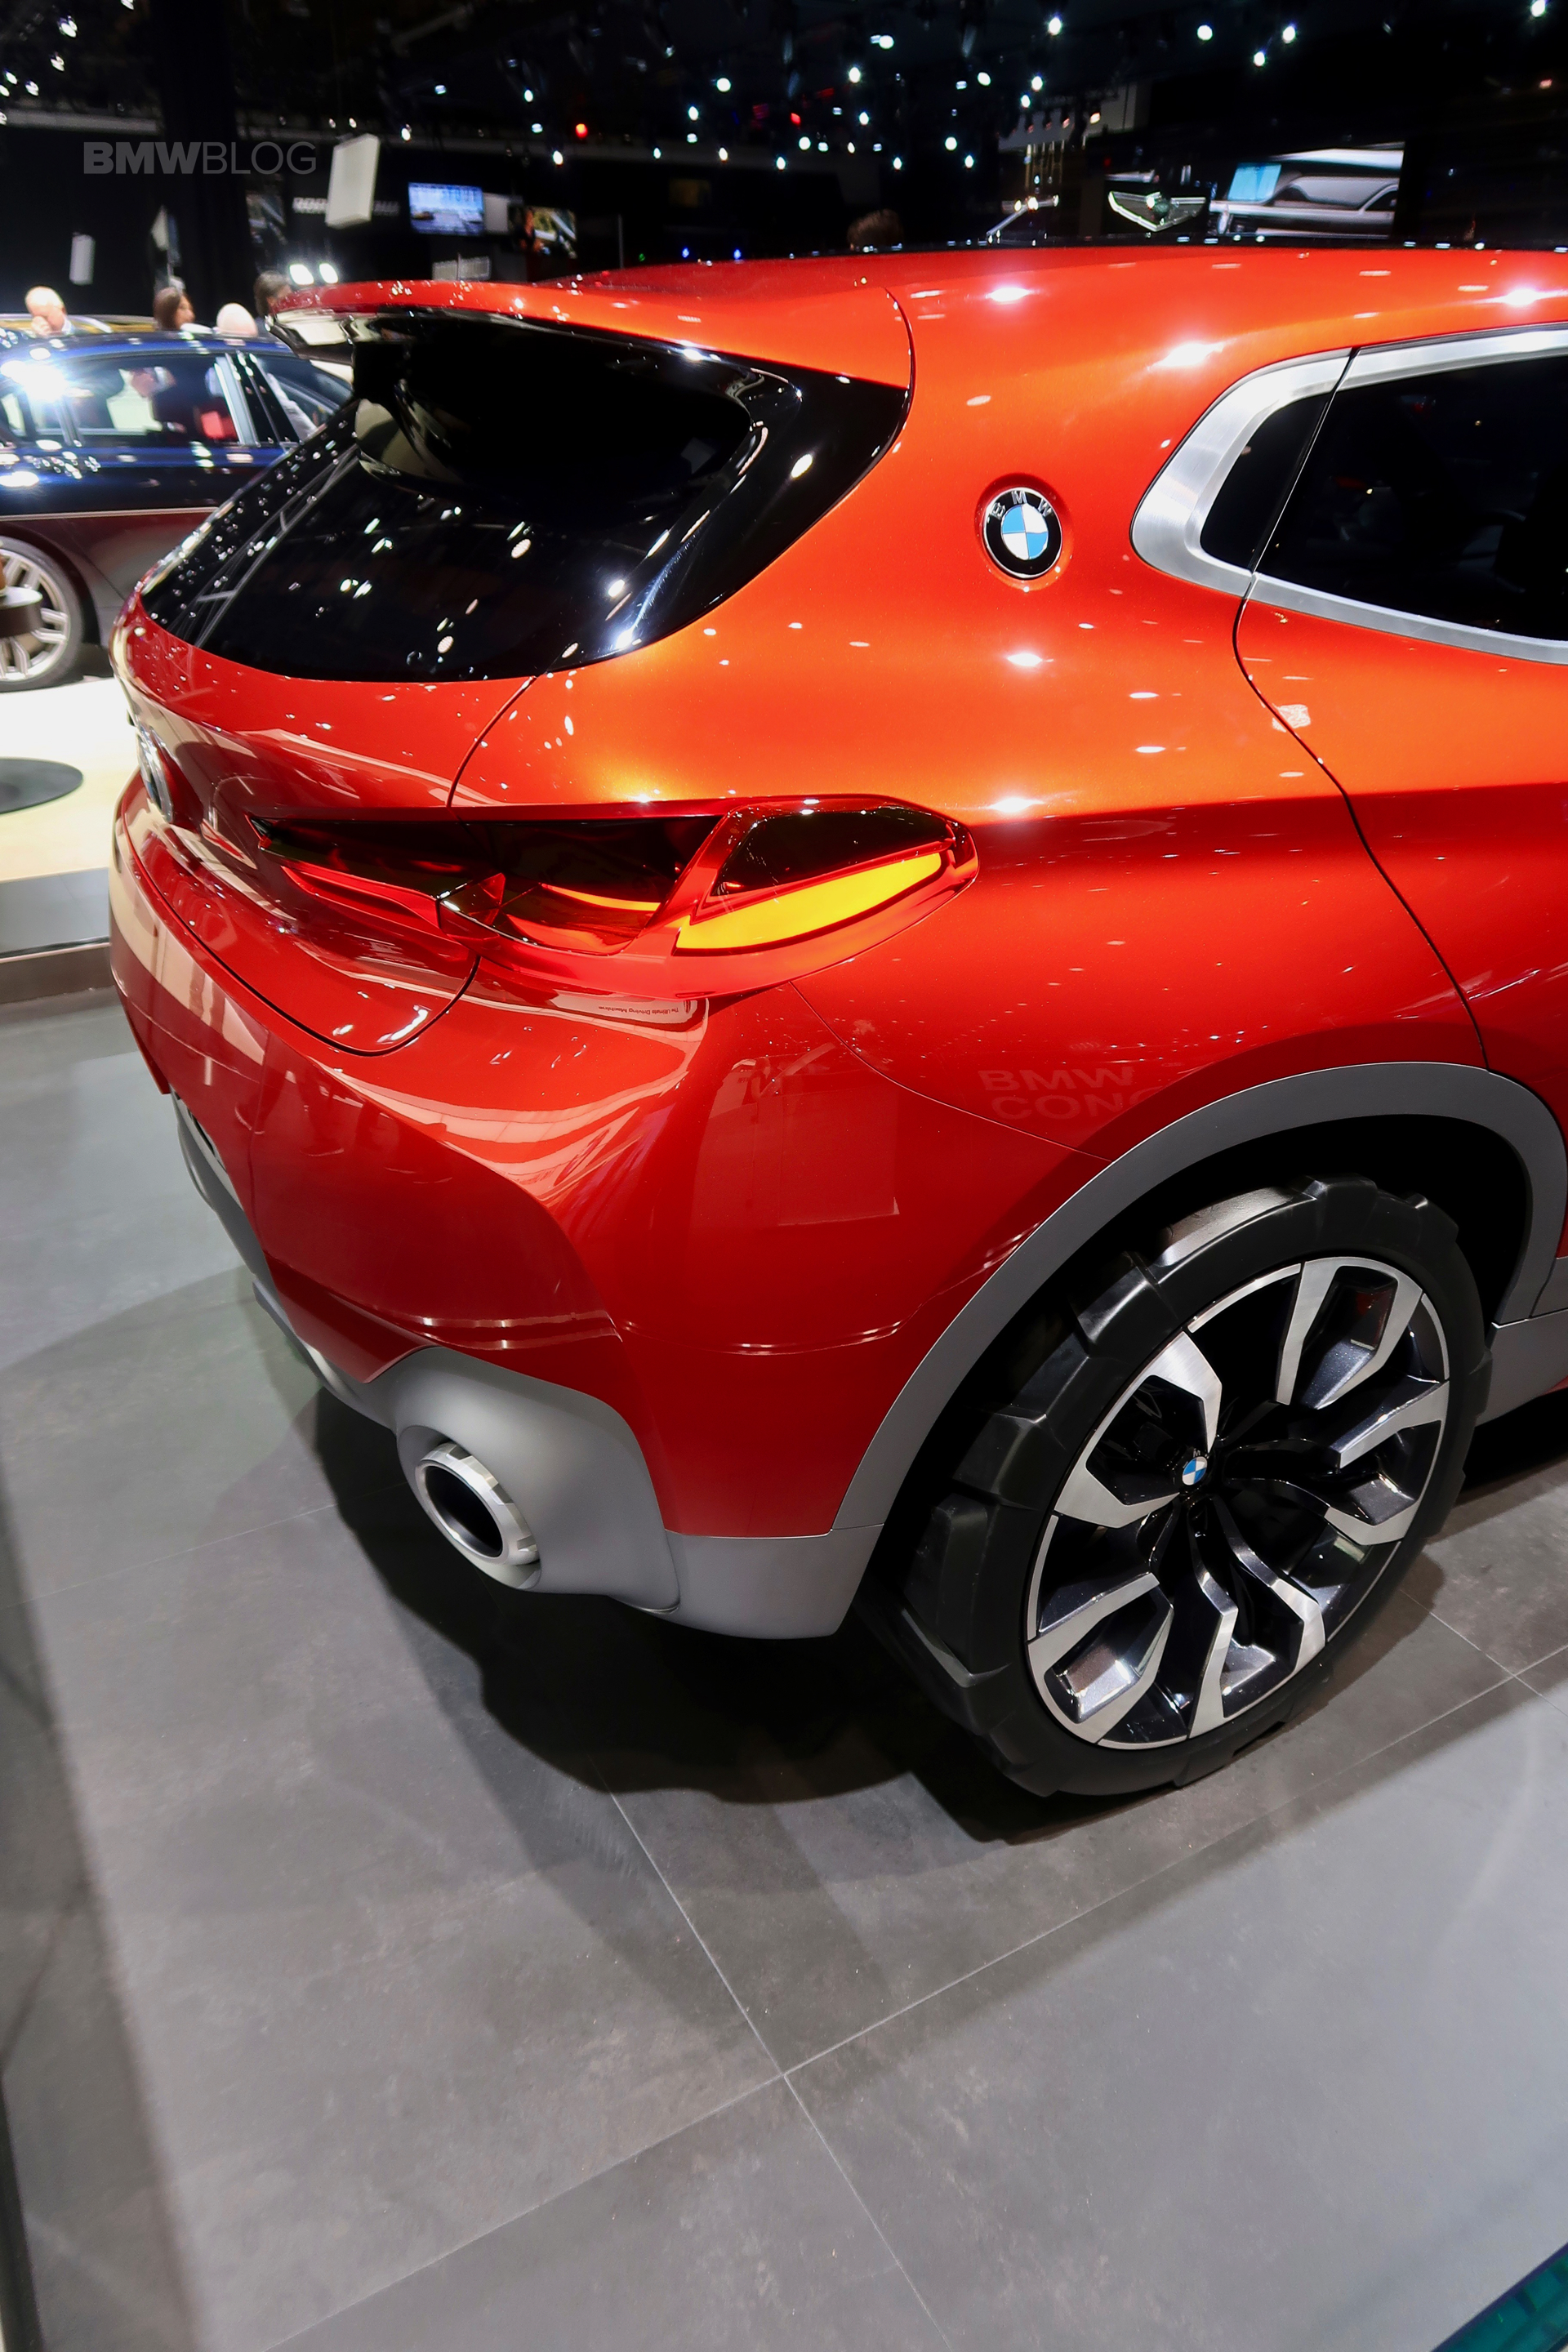 BMW X2 Concept Lands In Detroit This Week